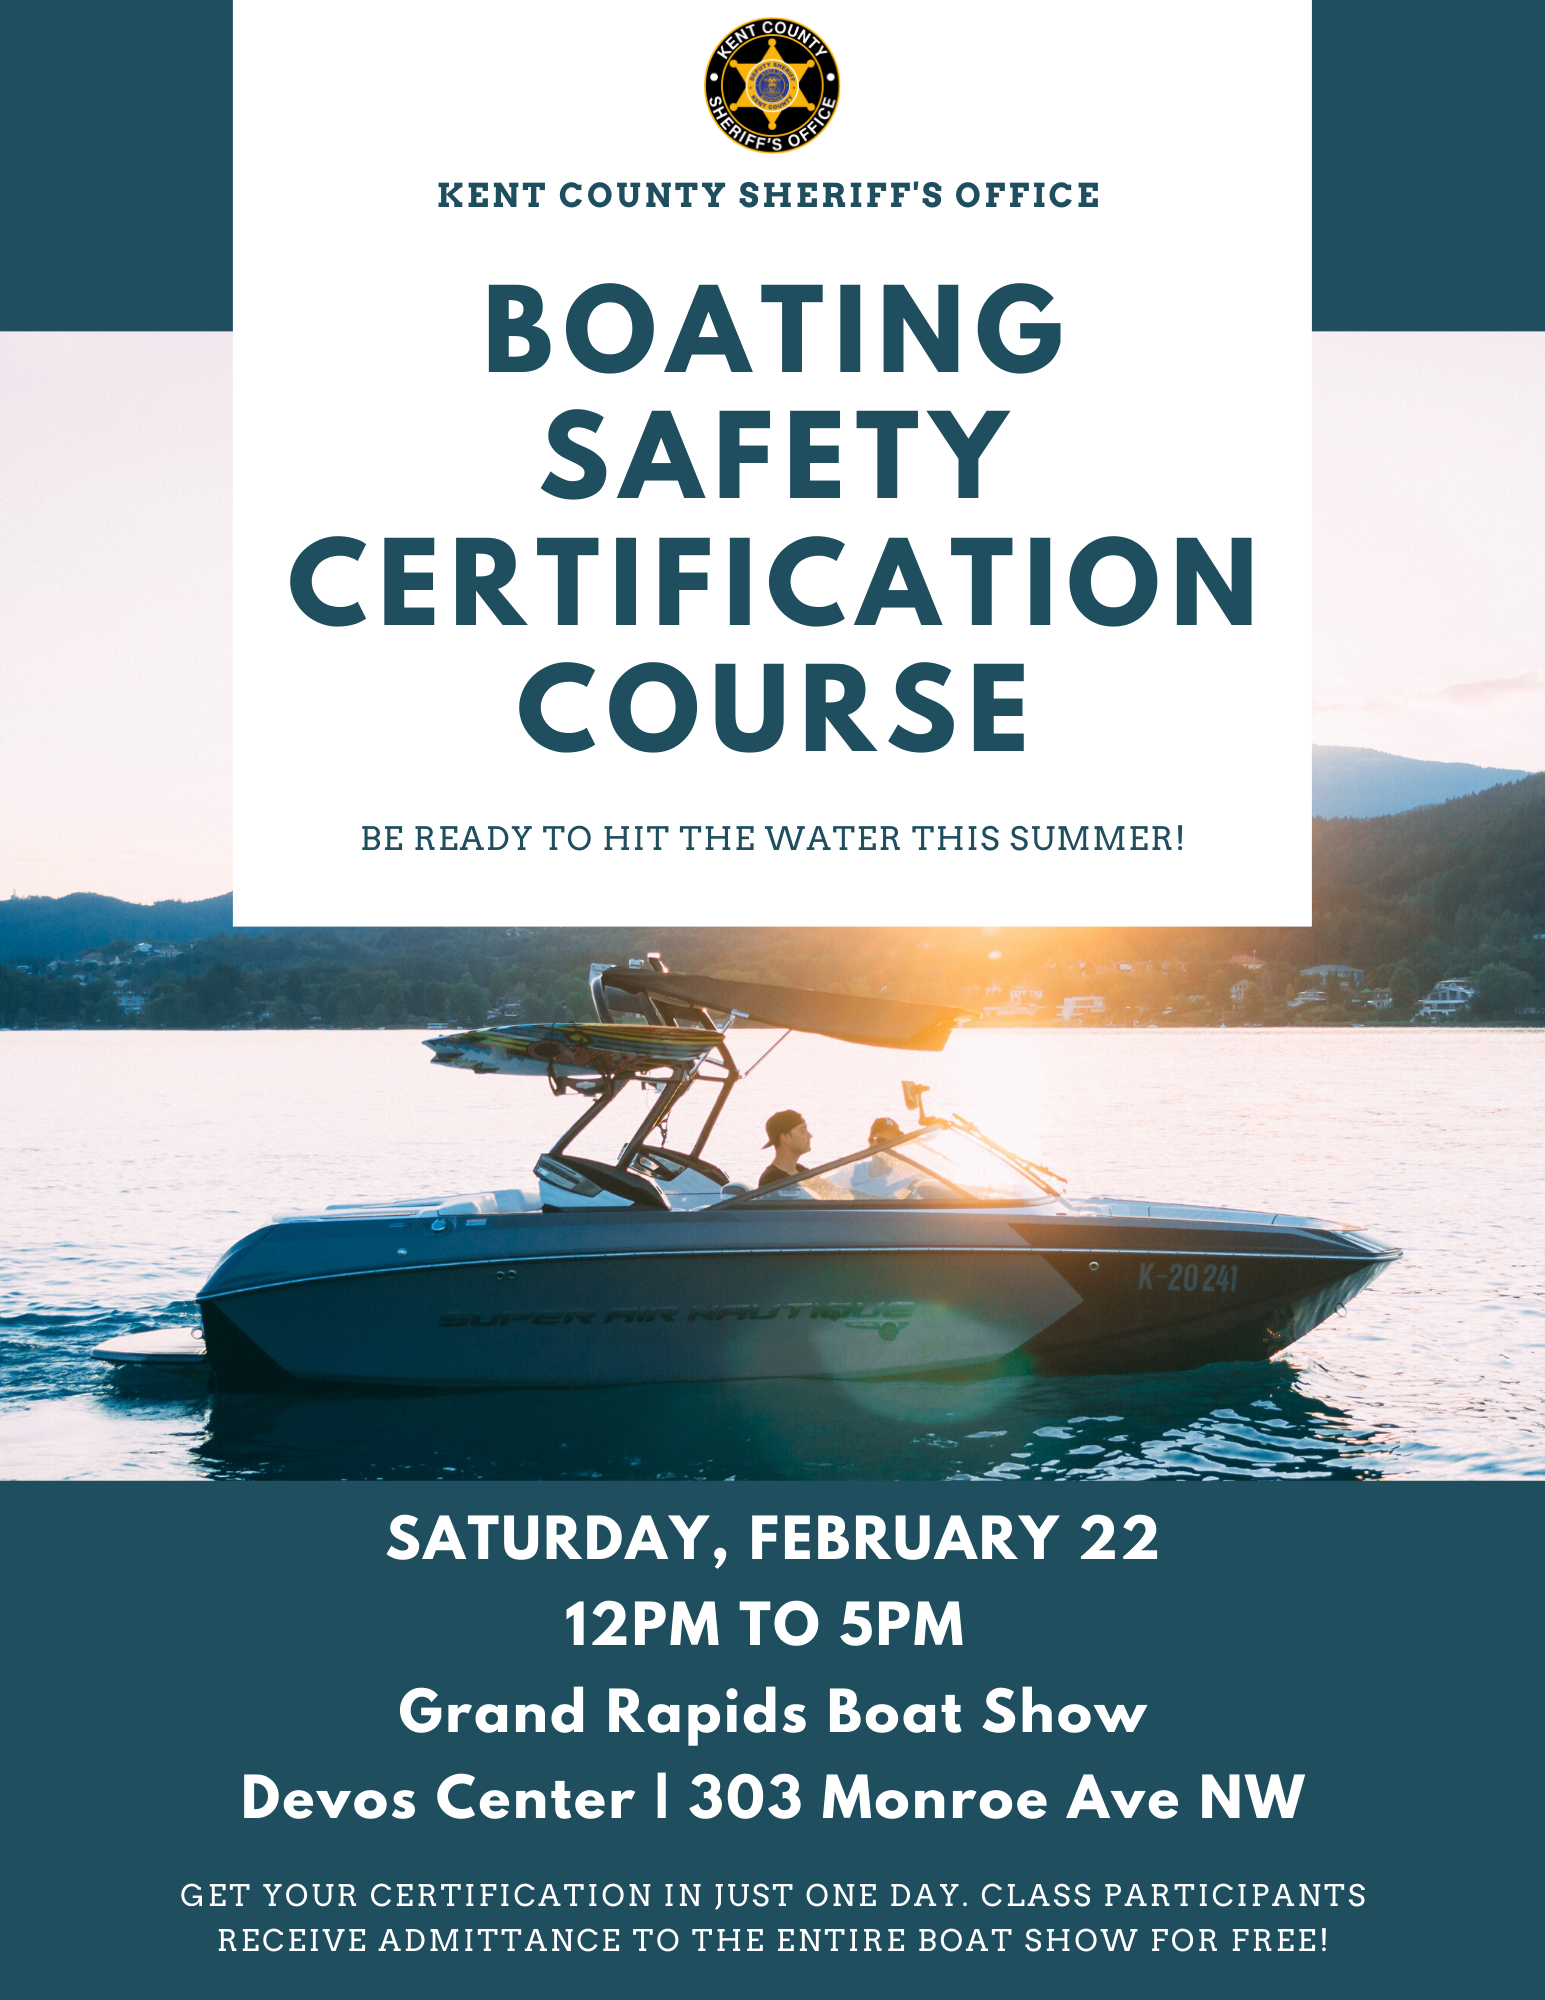 Boating Safety Certification Course